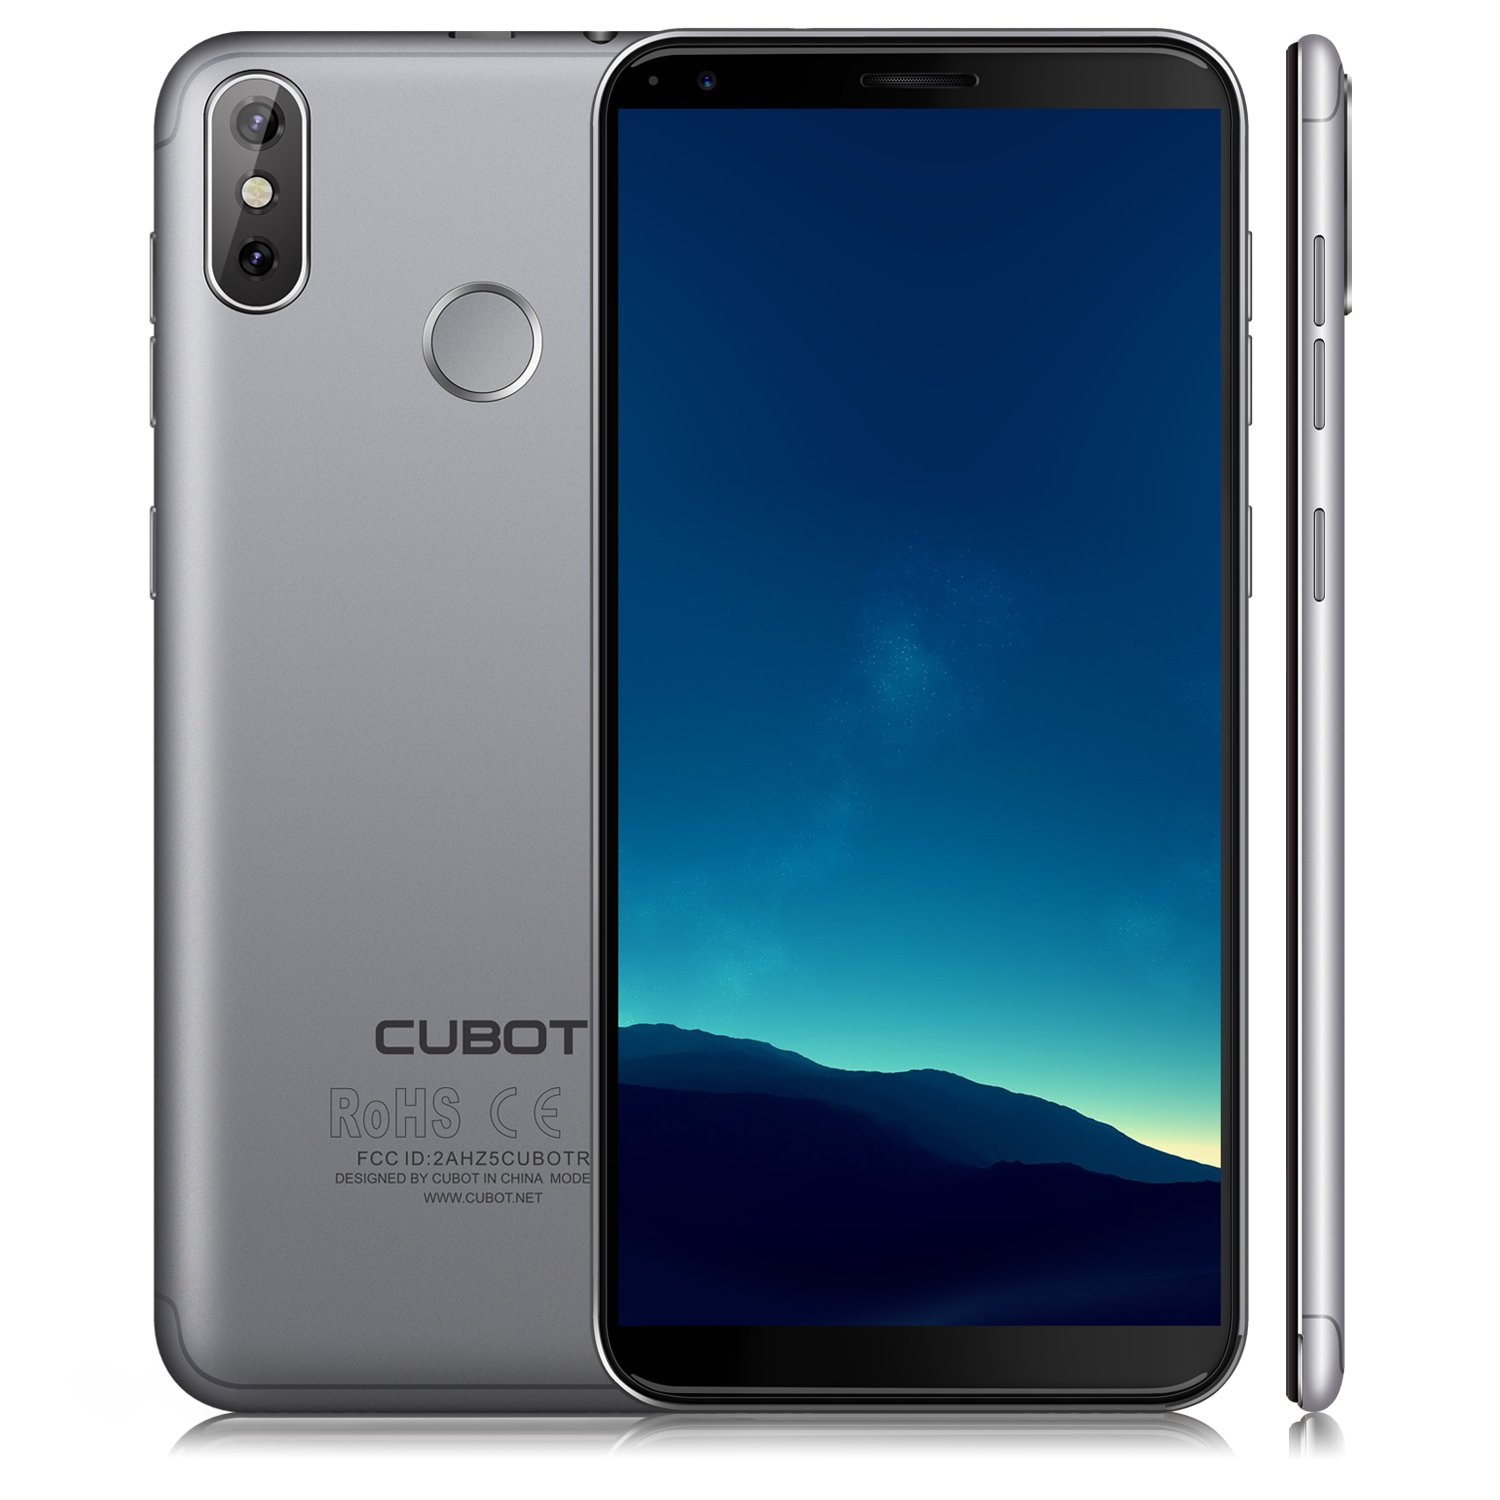 CUBOT R11(2018) Android 8.0 Smartphone Unlocked, 18:9 FHD 5.0 inch Touch Screen Sim Free Mobile Phone, Android 8.0, 3G Dual SIM,2GB RAM+16GB ROM,13MP+8MP Dual Camera, WIFI, GPS,Bluetooth (GRAY)